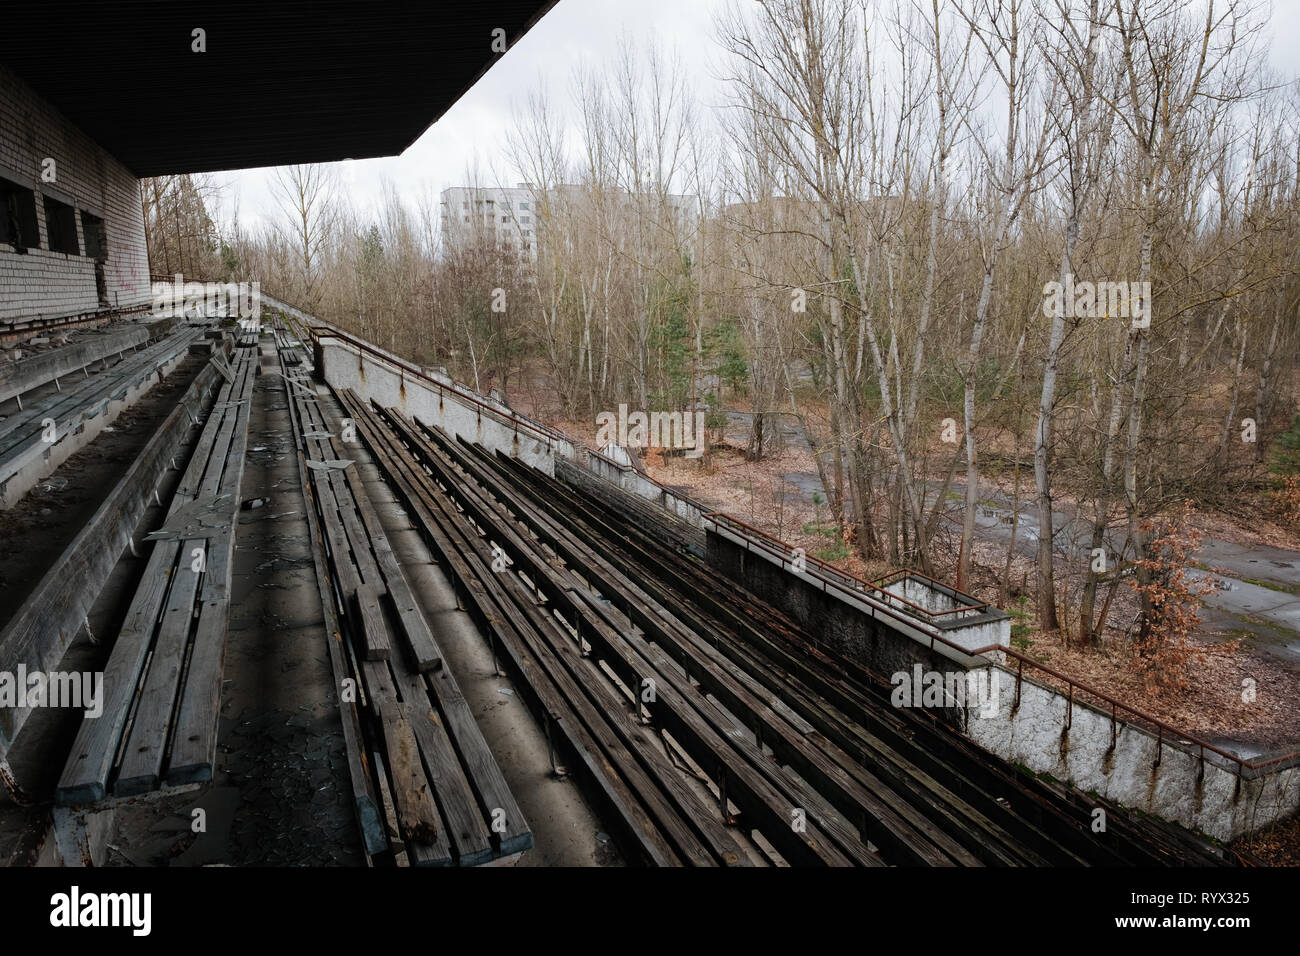 football stadium in the abandoned city of Pripyat, Chernobyl nuclear power plant disaster exclusion zone, Ukraine. - Stock Image